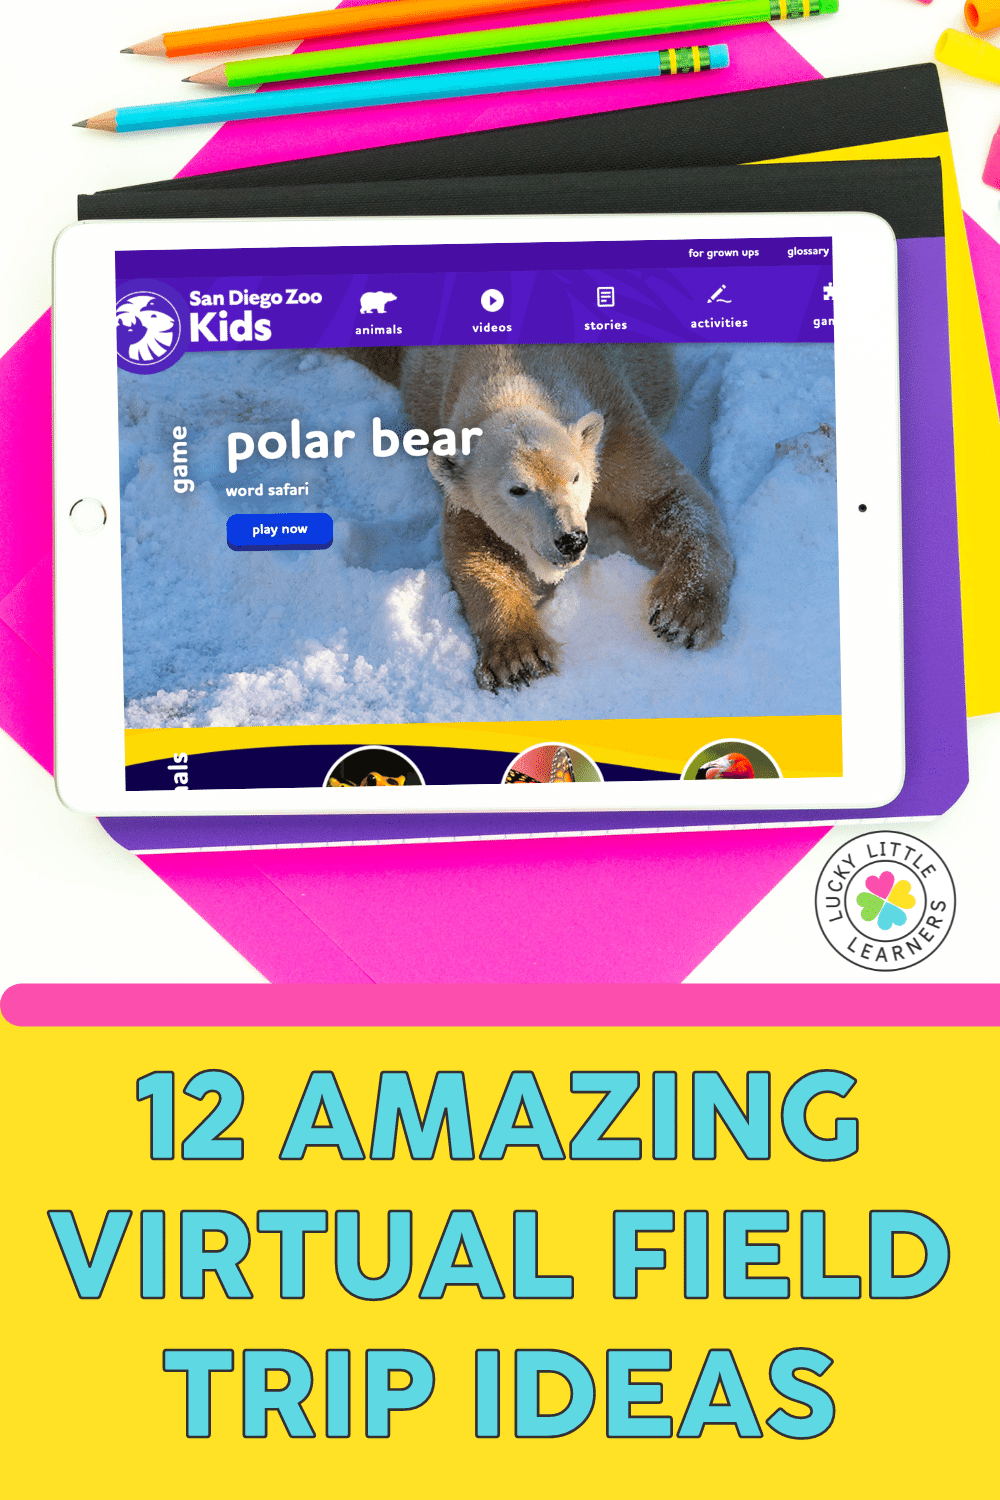 Who says you actually have to leave the classroom to have an amazing field trip experience? The world is at your fingertips with these fun, engaging, and FREE virtual field trip ideas. Dive under the sea, blast off into outer space, and get WILD with animals with just a click.